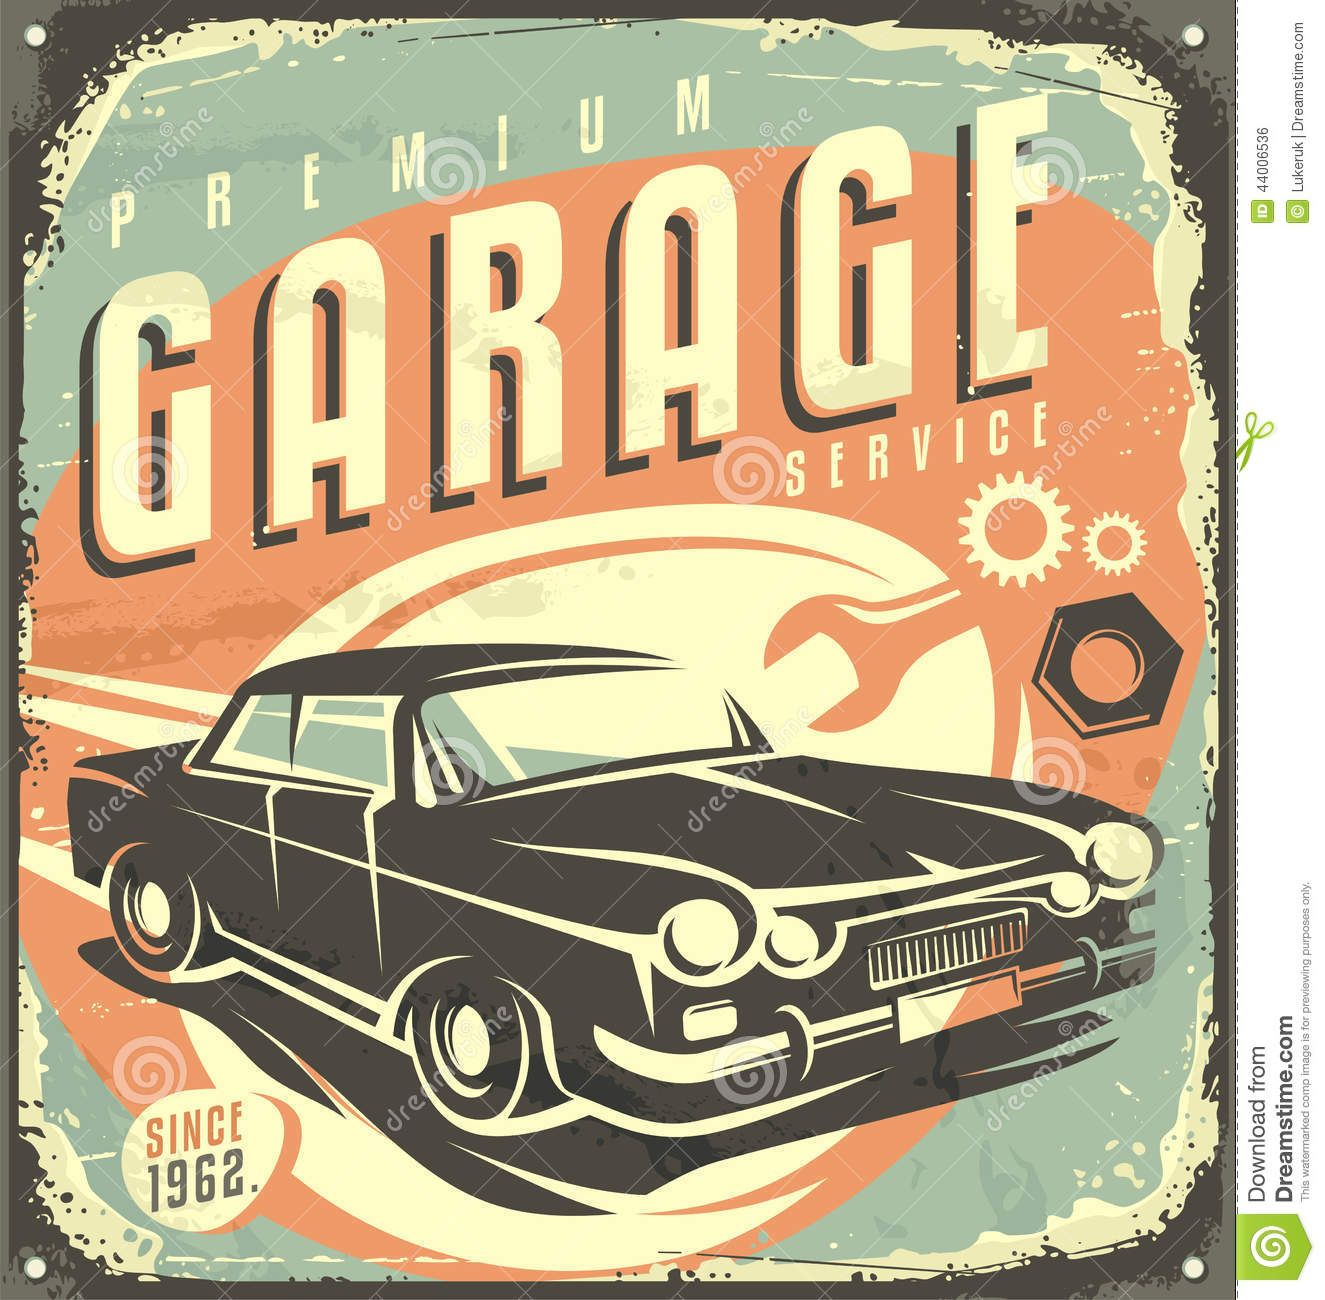 Vintage Garage Ideas: Download From Over 42 Million